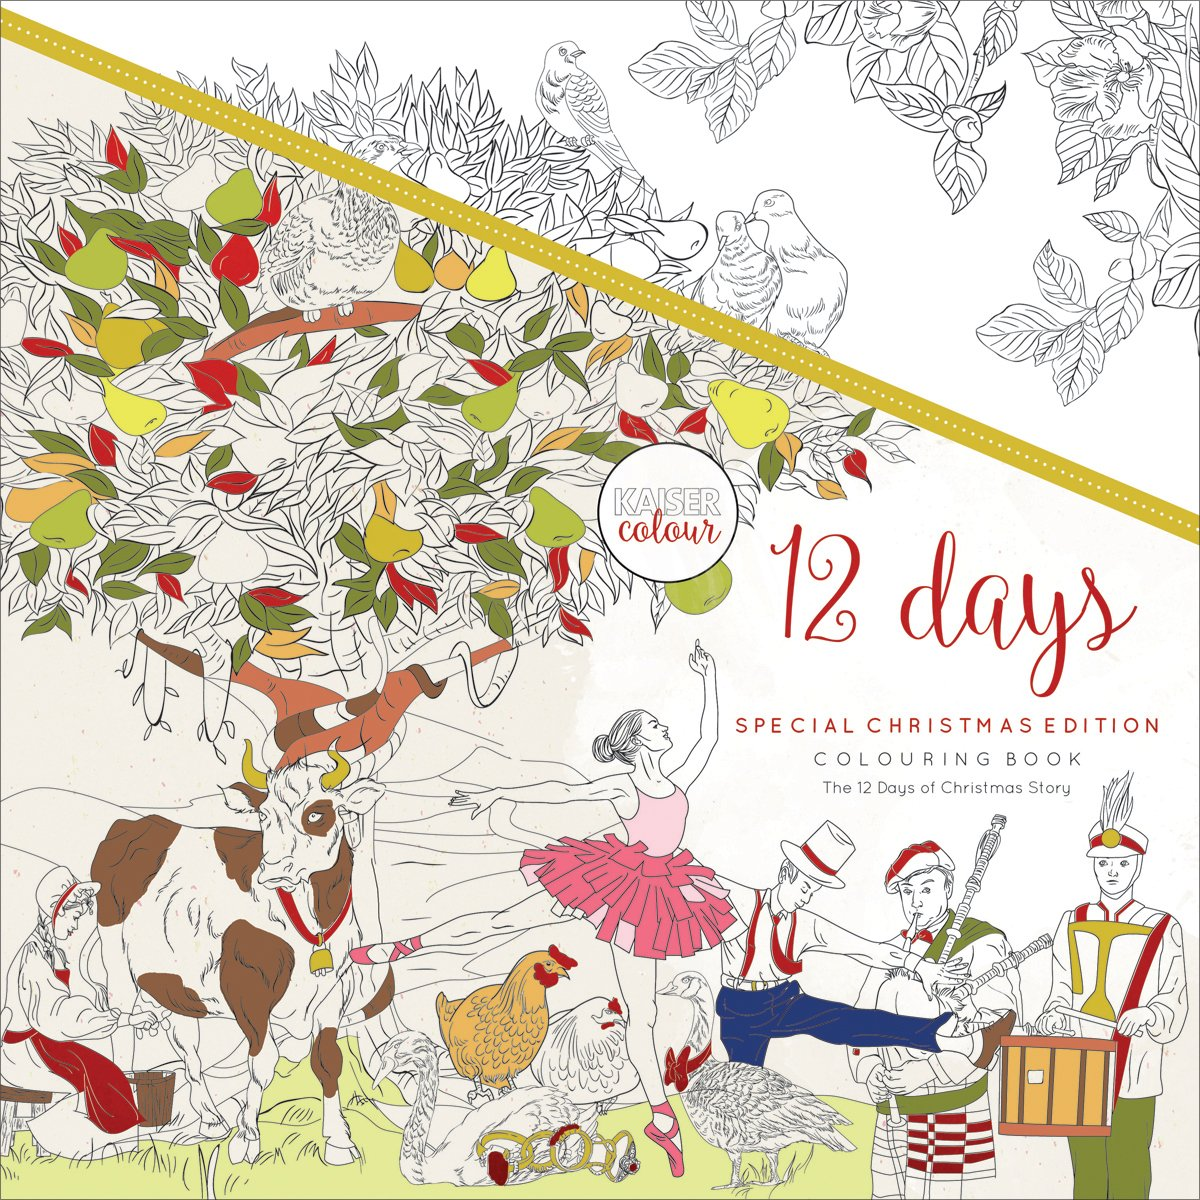 Kaisercraft 12 Days of Christmas KaiserColour Perfect Bound Coloring Book, 9.75X9.75 9.75X9.75 CL541